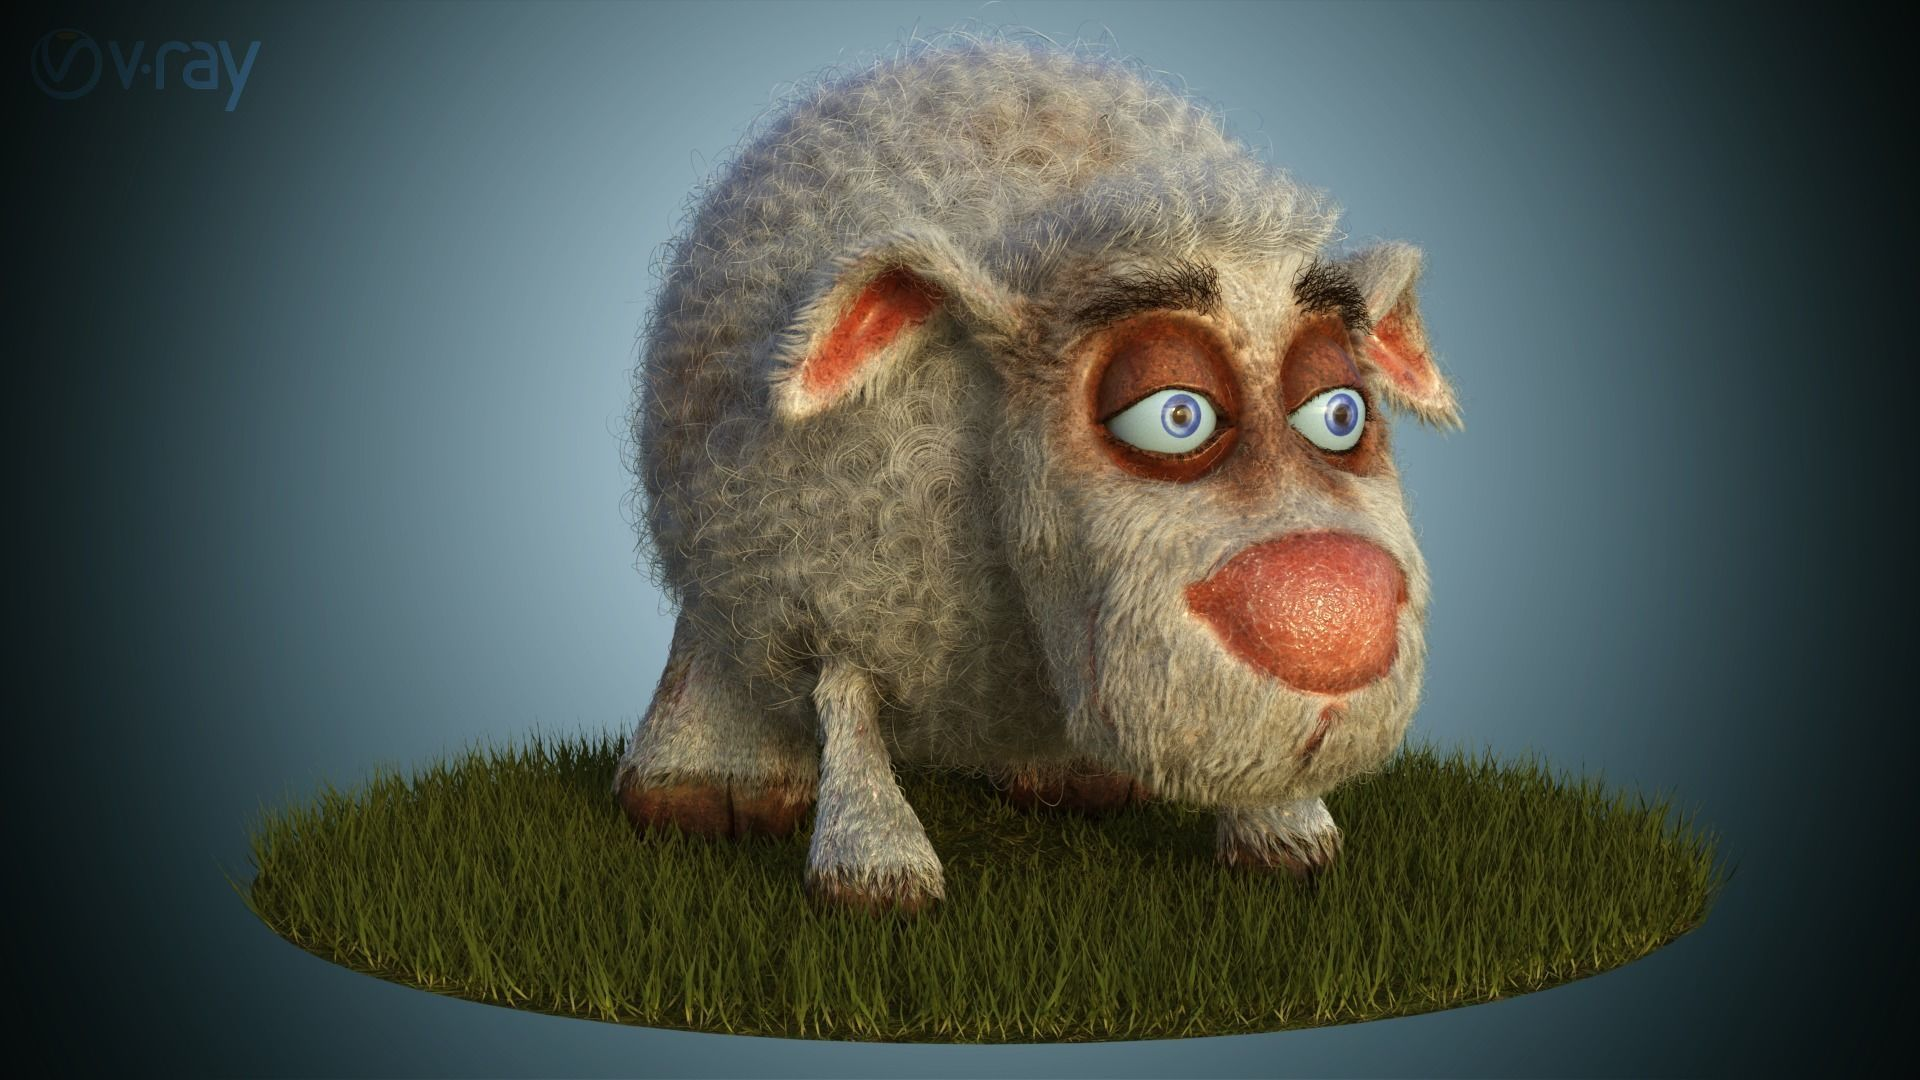 Sheep Dog for production render in Vray